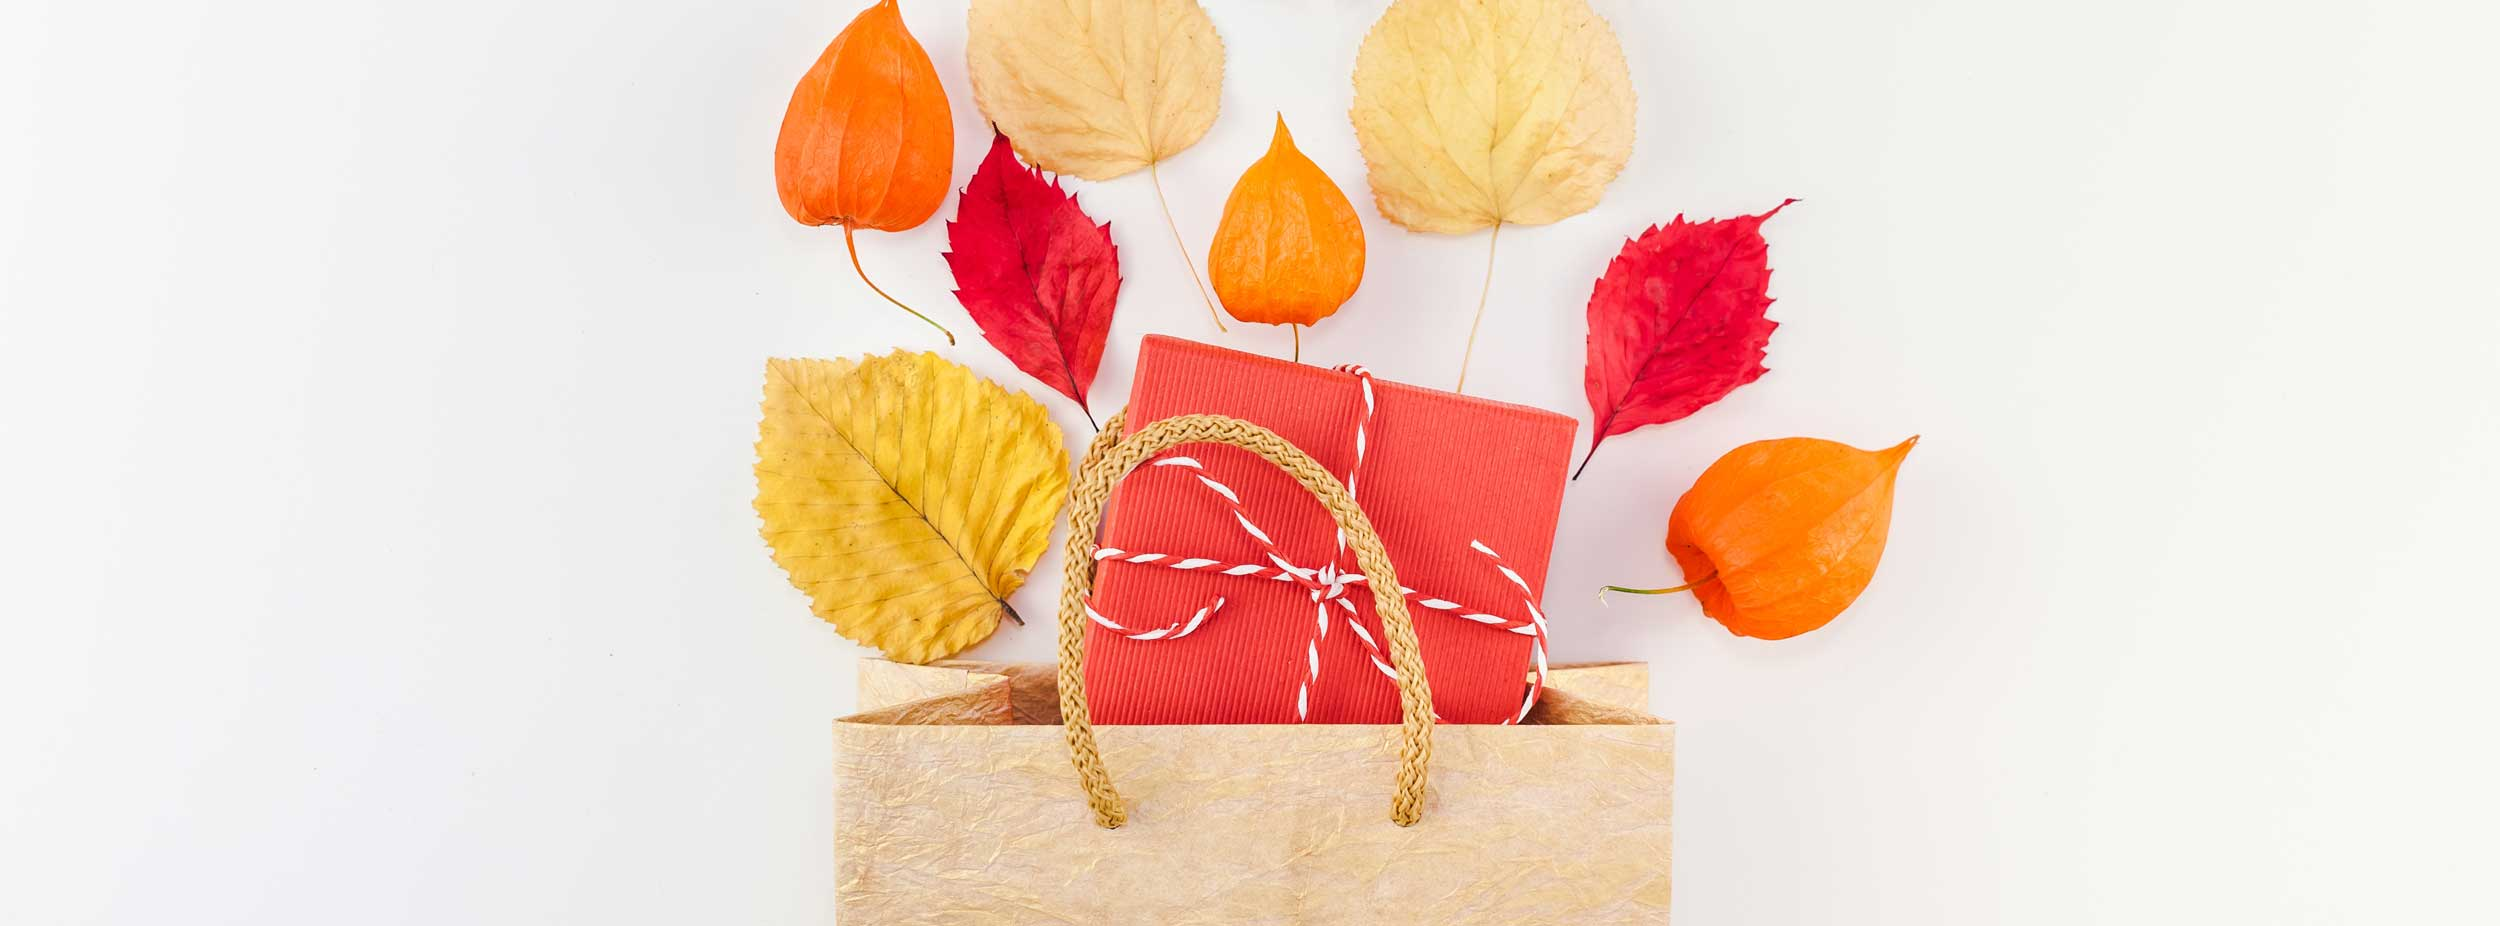 creative-top-view-flat-lay-autumn-composition-shopping-bag-dried-orange-flowers-leaves-background_t20_EnkWrQ.jpg